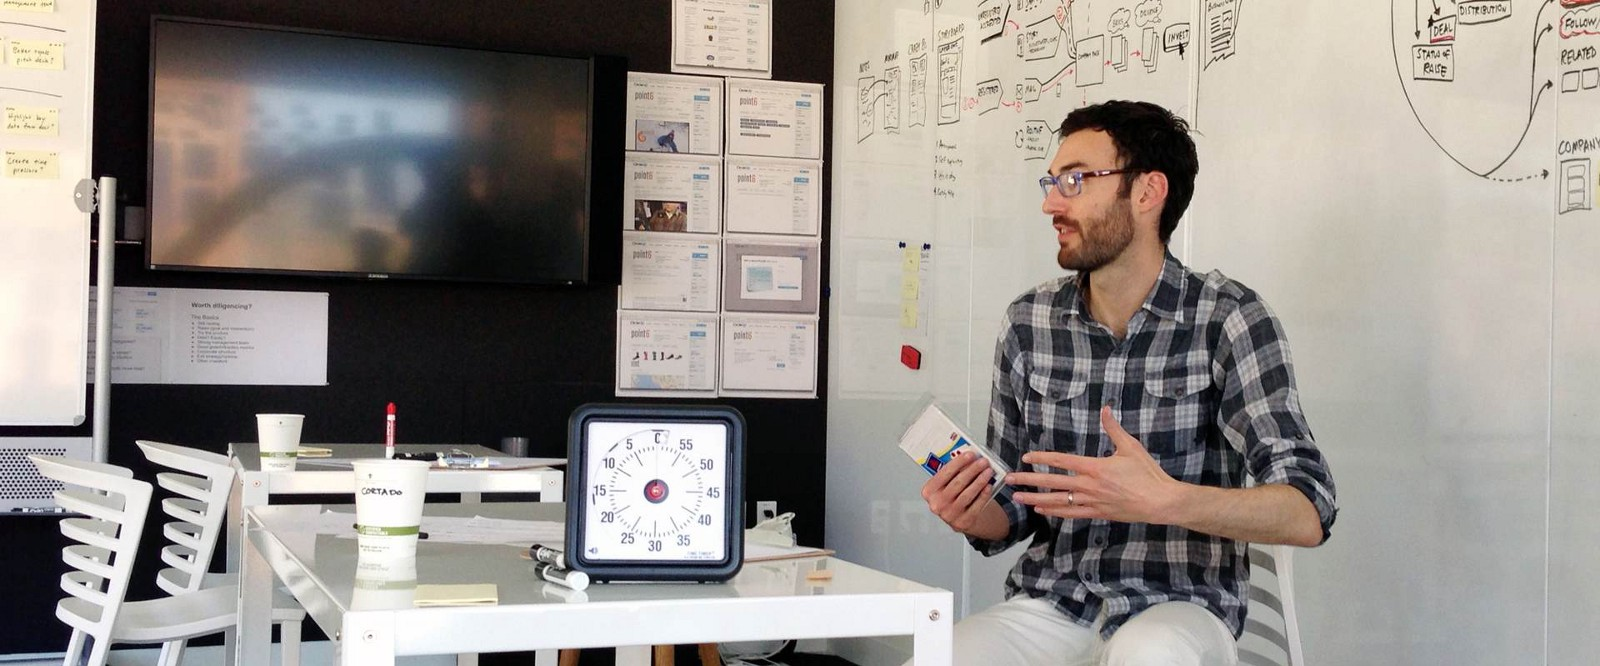 why your team needs a war room and how to set one up rh library gv com war room design ideas war room design images